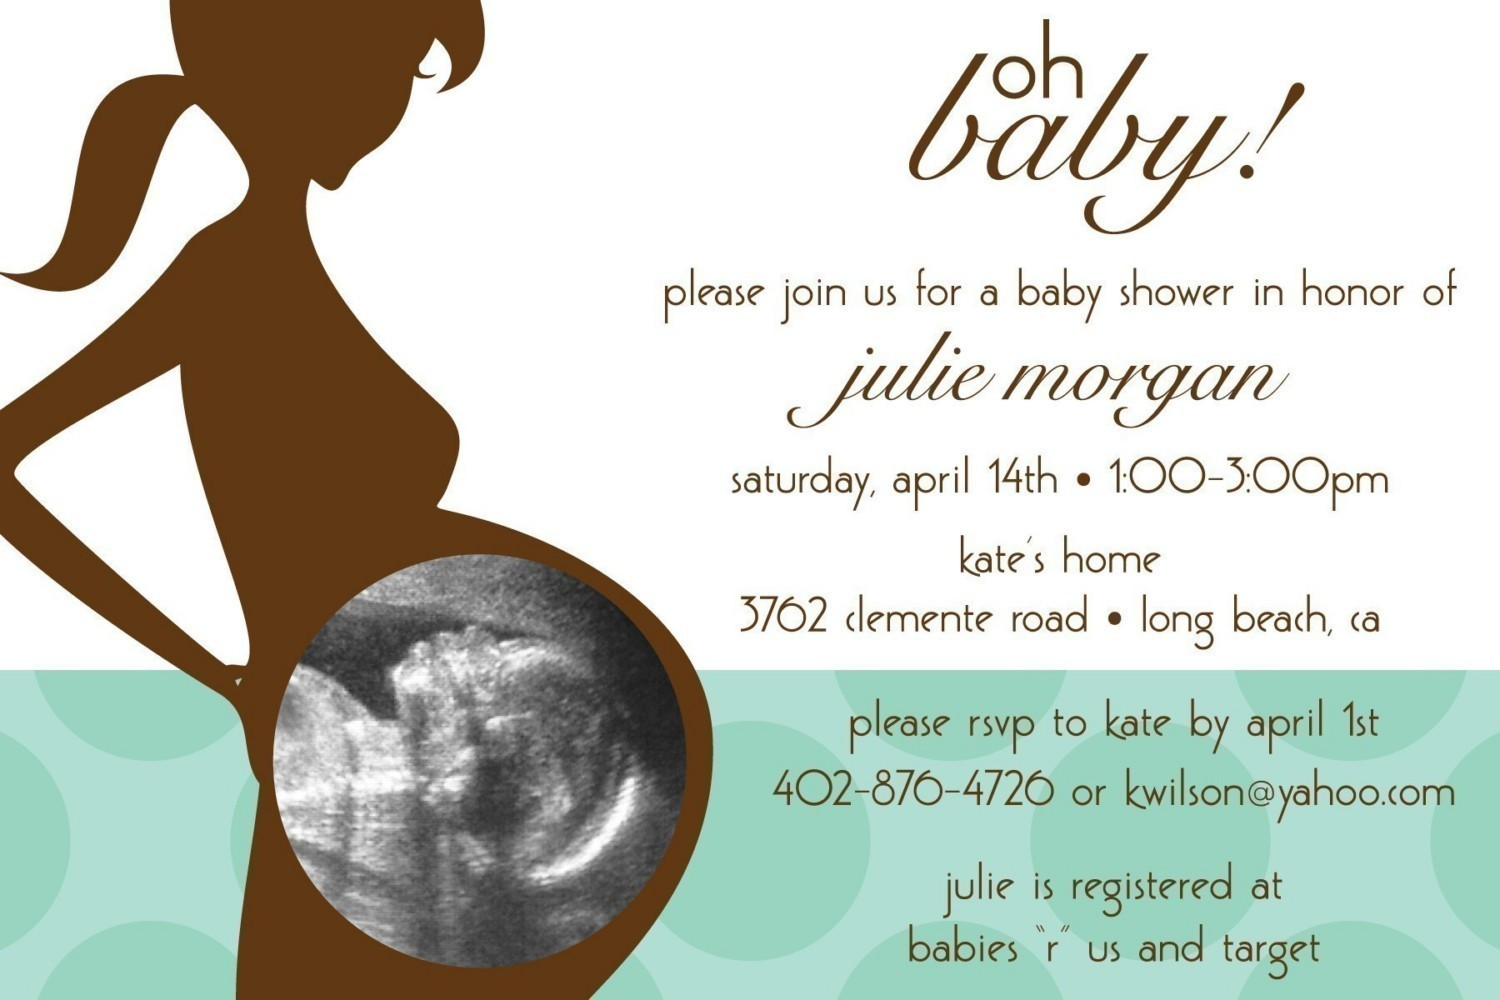 Full Size of Baby Shower:delightful Baby Shower Invitation Wording Picture Designs Designs Inexpensive Baby Shower Invite Wording At Work With Hd Full Size Of Designsinexpensive Baby Shower Invite Wording At Work With Hd Awesome Yellow